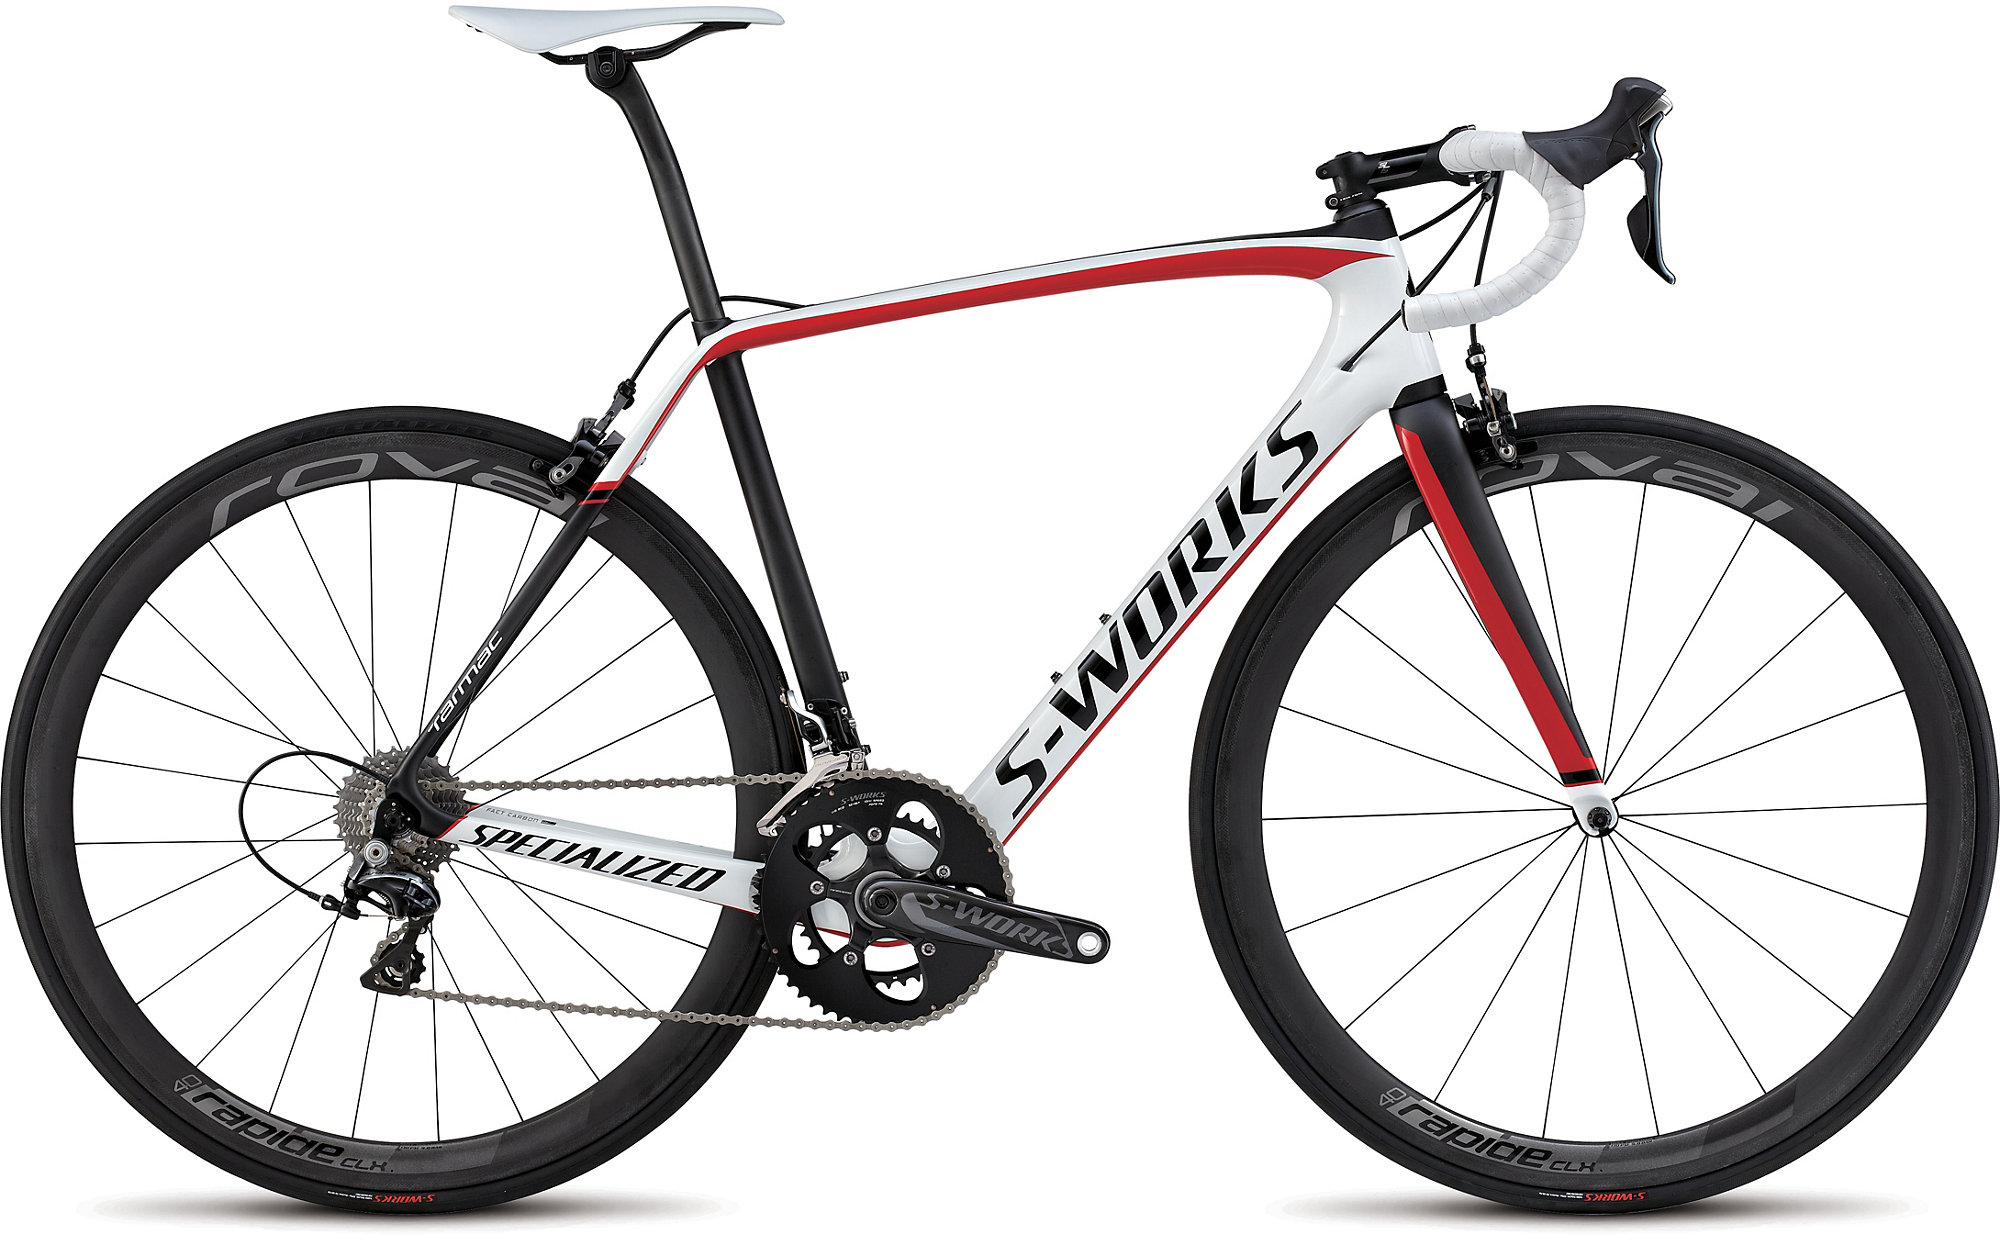 2015 Specialized S-Works Tarmac - Specialized Concept Store